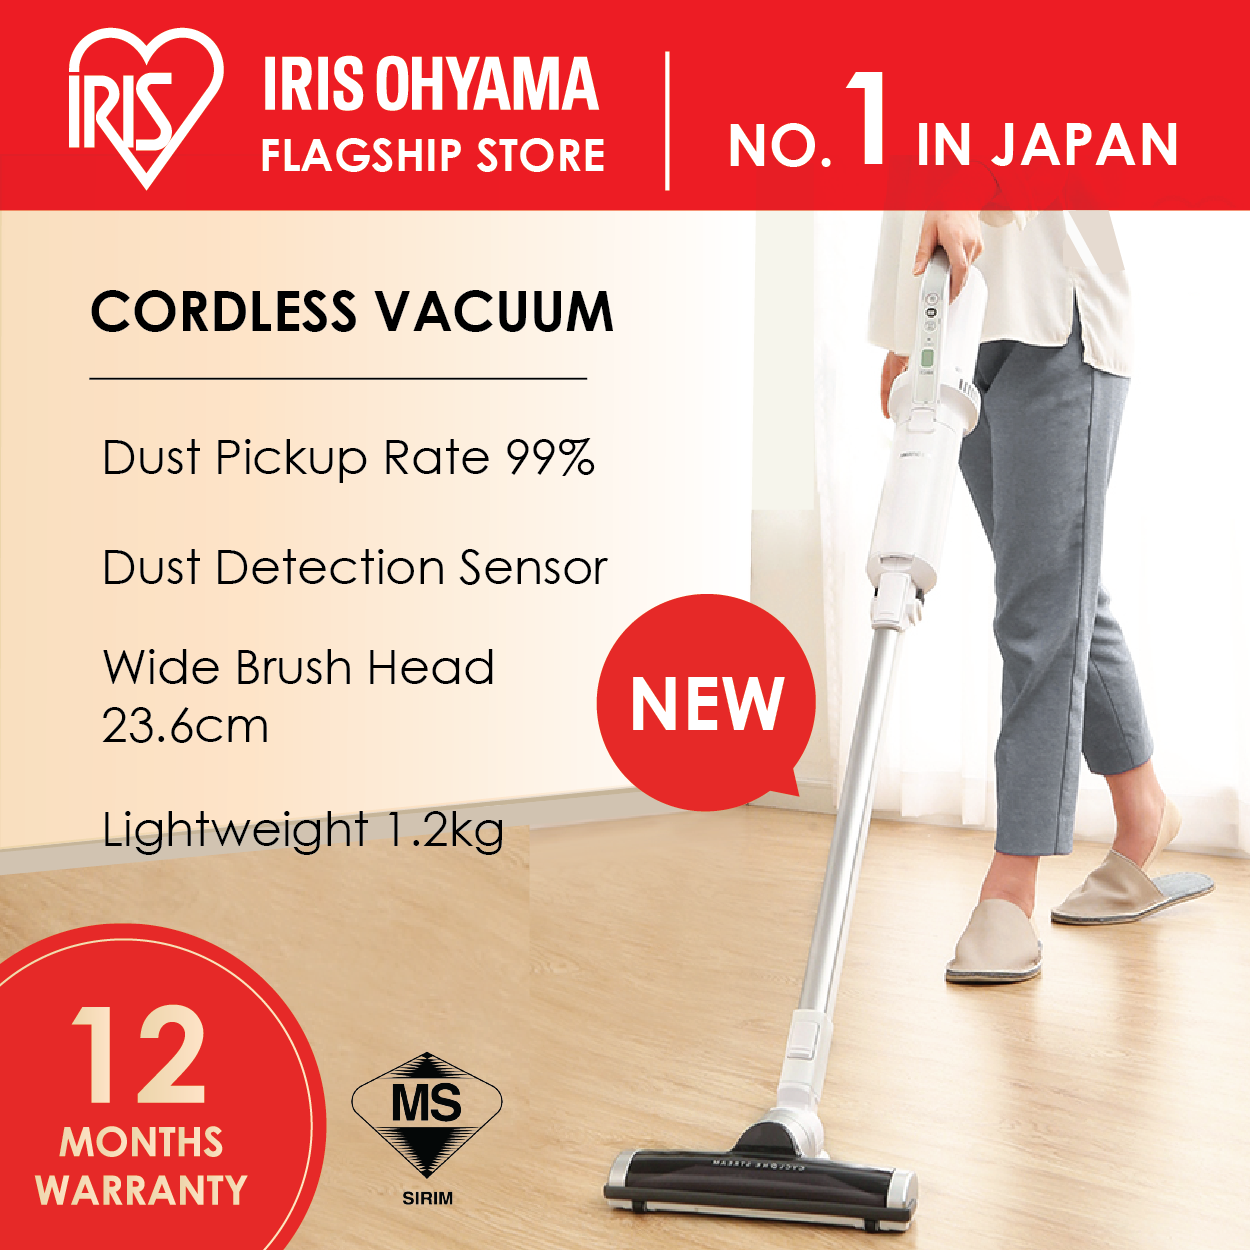 IRIS OHYAMA IC-SLDC8 Cordless Vacuum Cleaner (12 Months Warranty)